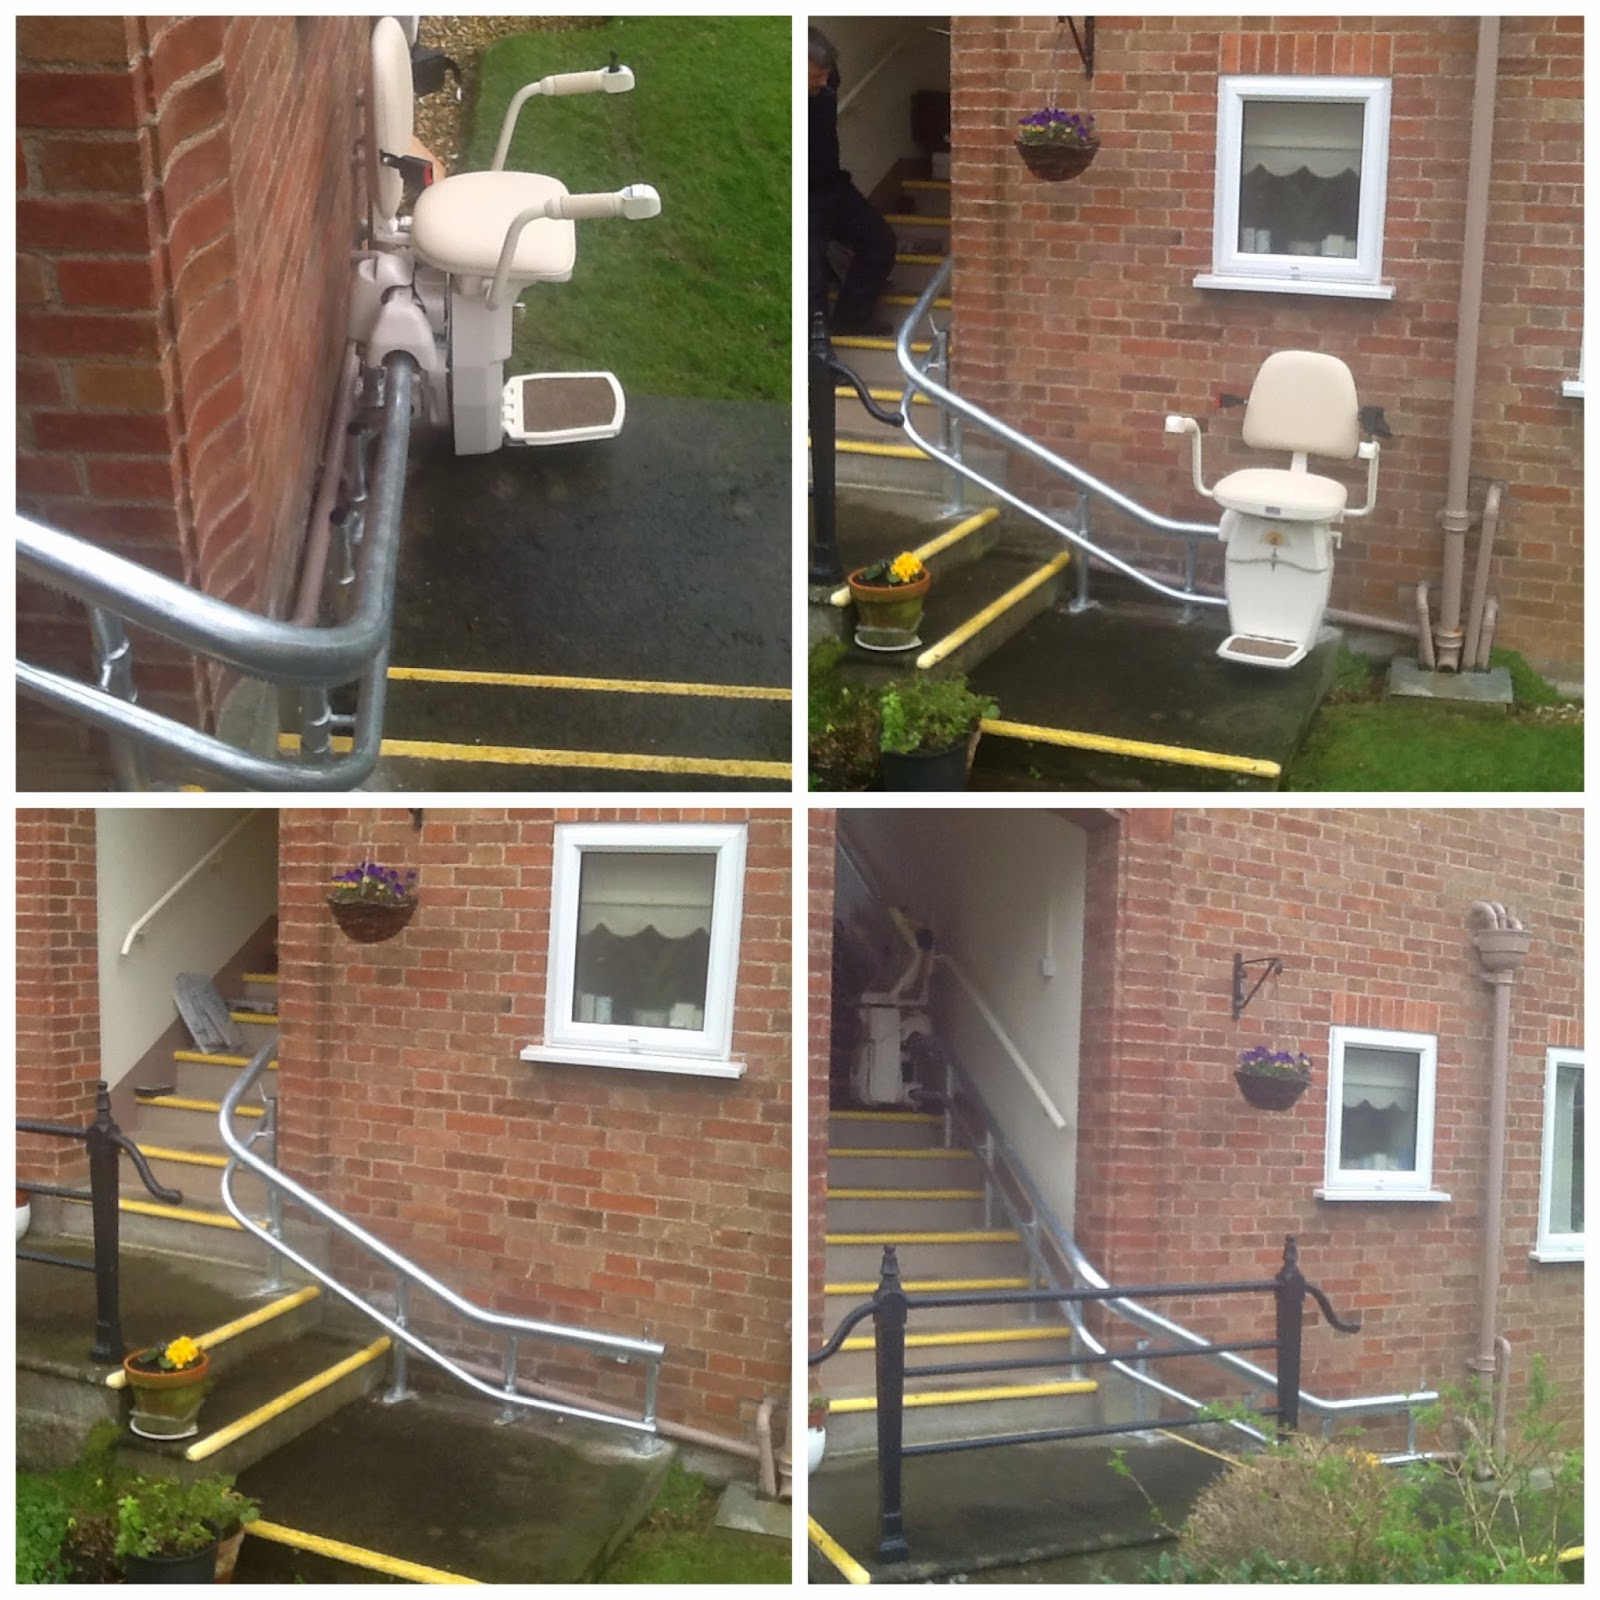 hawle external stairlift manchester branch stair lifts stannah stair lift wiring diagram at aneh.co